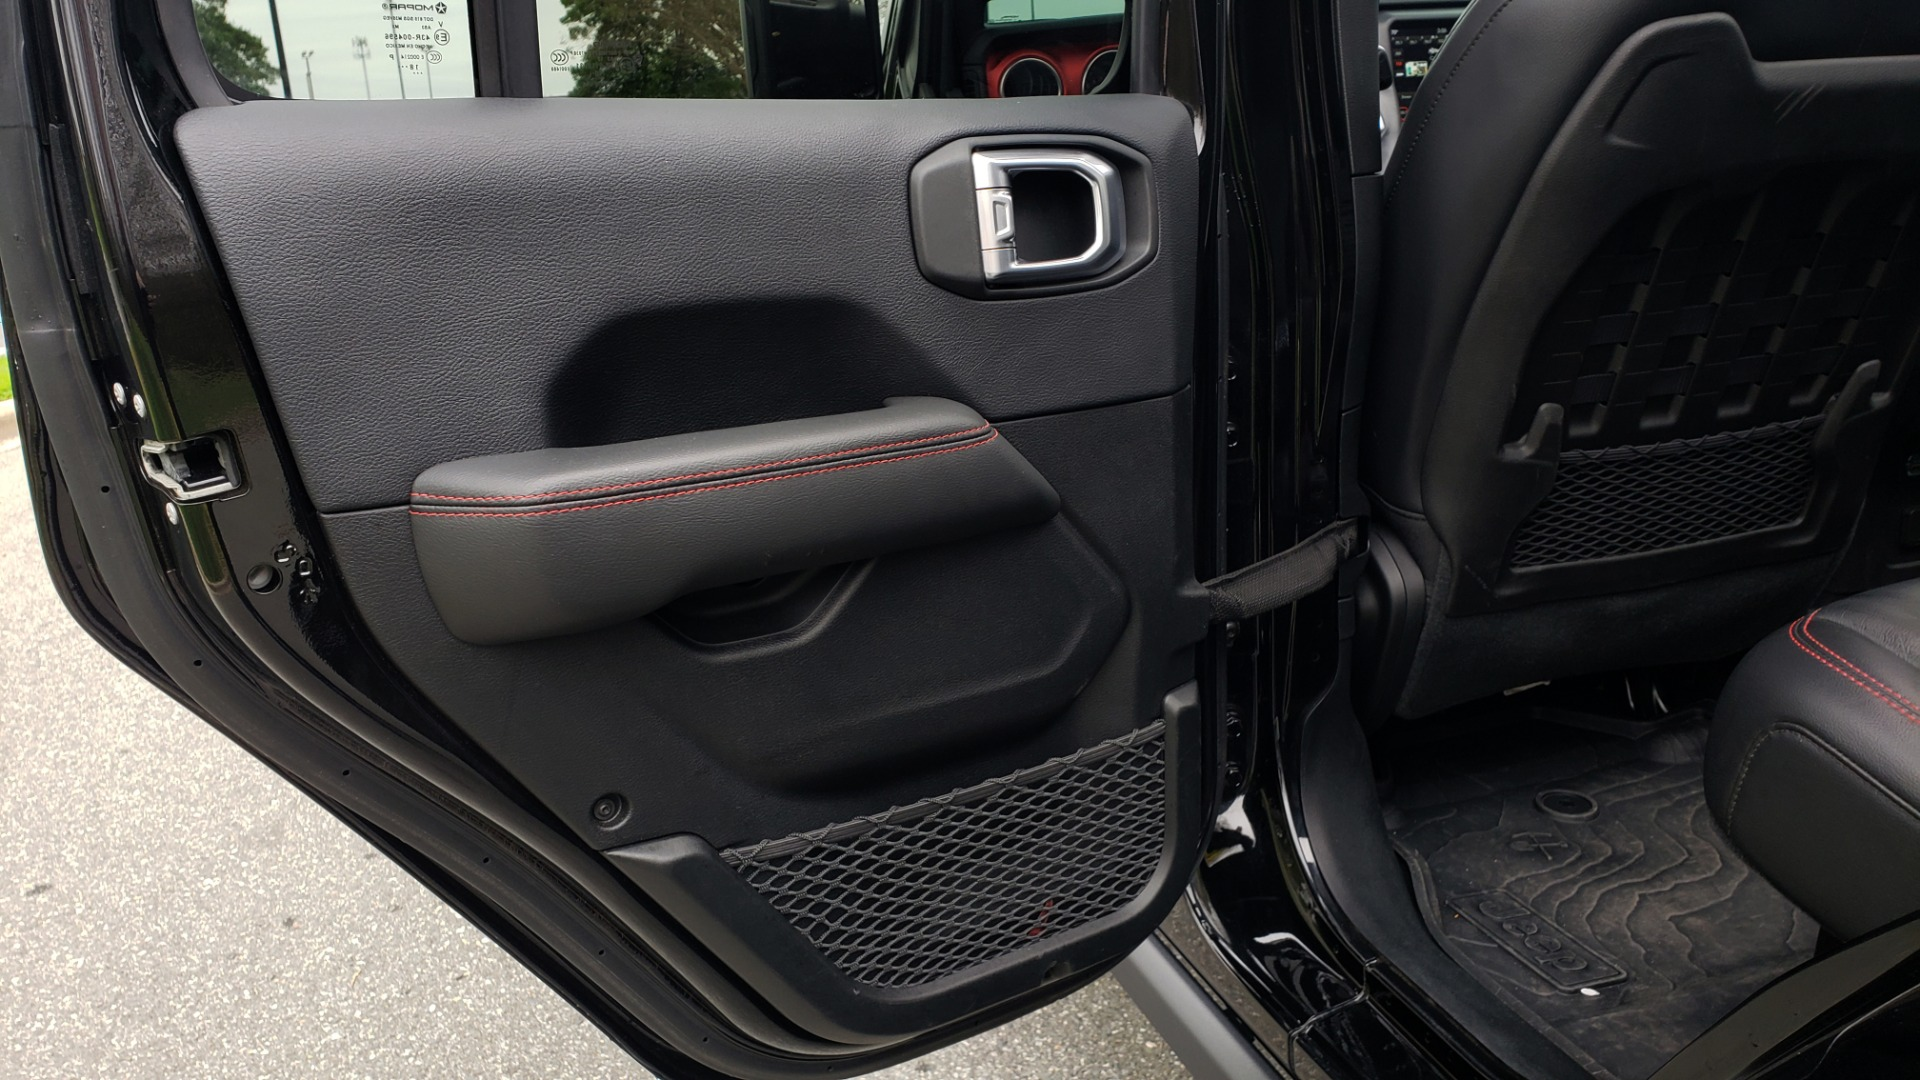 Used 2019 Jeep WRANGLER UNLIMITED RUBICON 4WD / V6 / 8-SPD AUTO / NAV / PWR TOP / REARVIEW for sale Sold at Formula Imports in Charlotte NC 28227 82